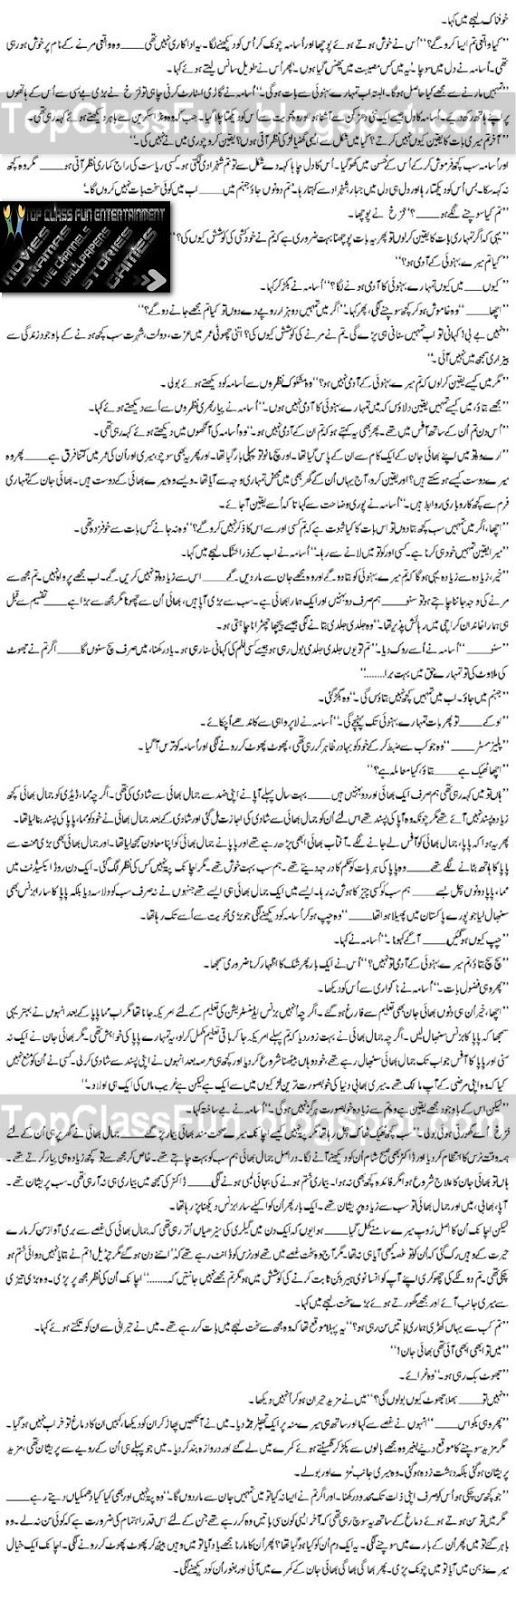 Romantic Urdu Novel - MOHABBAT &#8211; By Shahina Chanda Mehtab Page 6